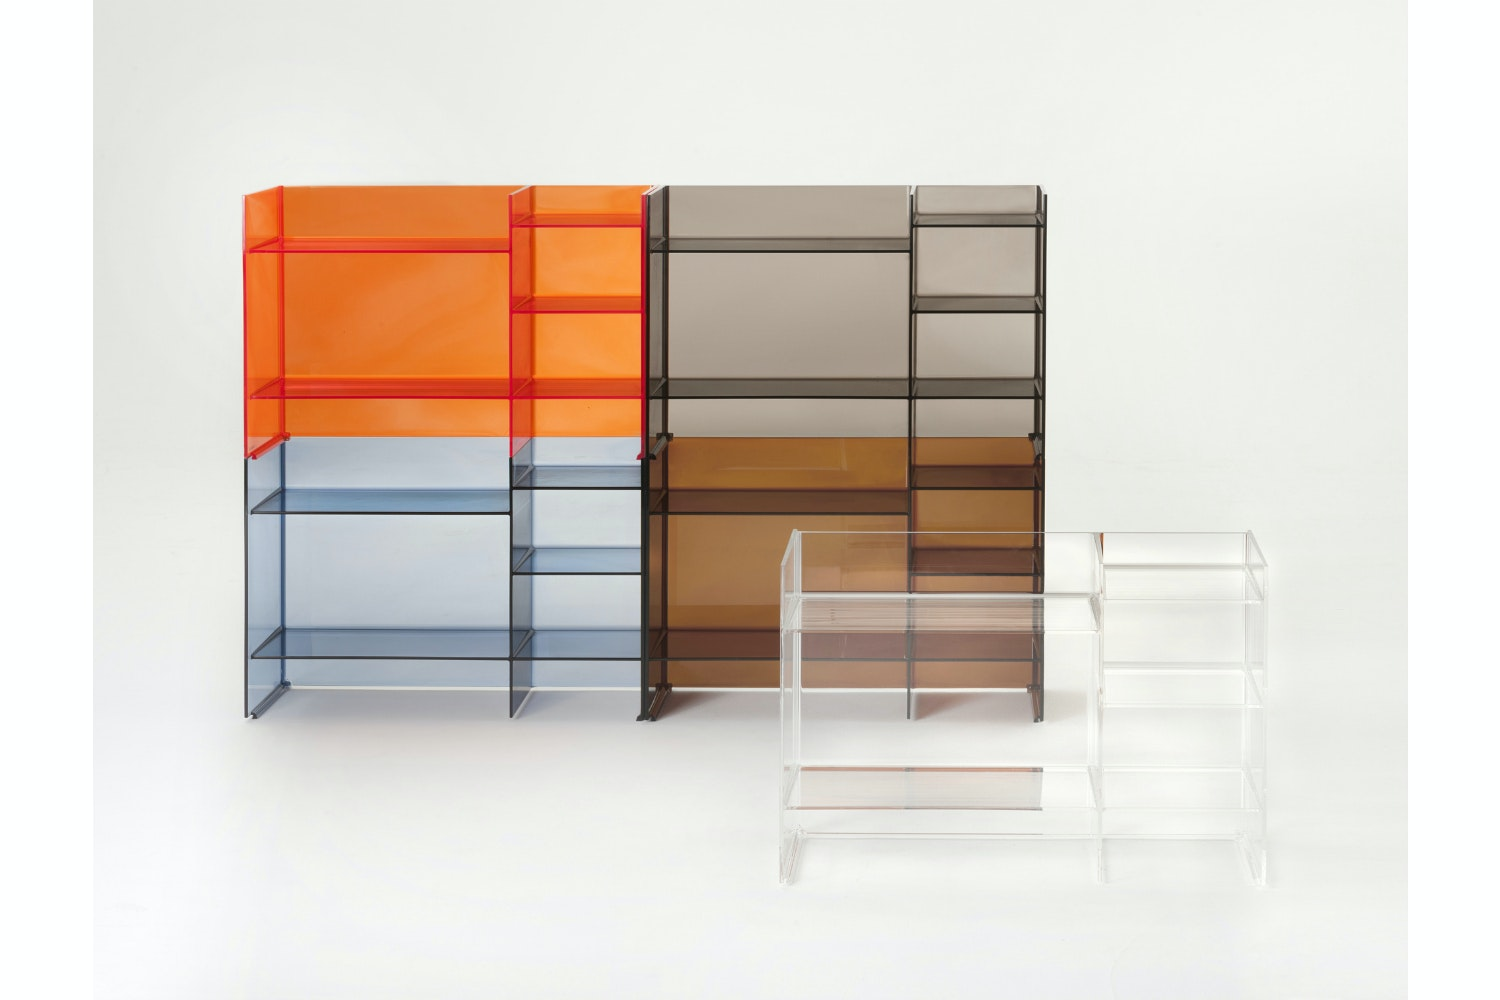 Sound-Rack Cabinet by Ludovica & Roberto Palomba for Kartell